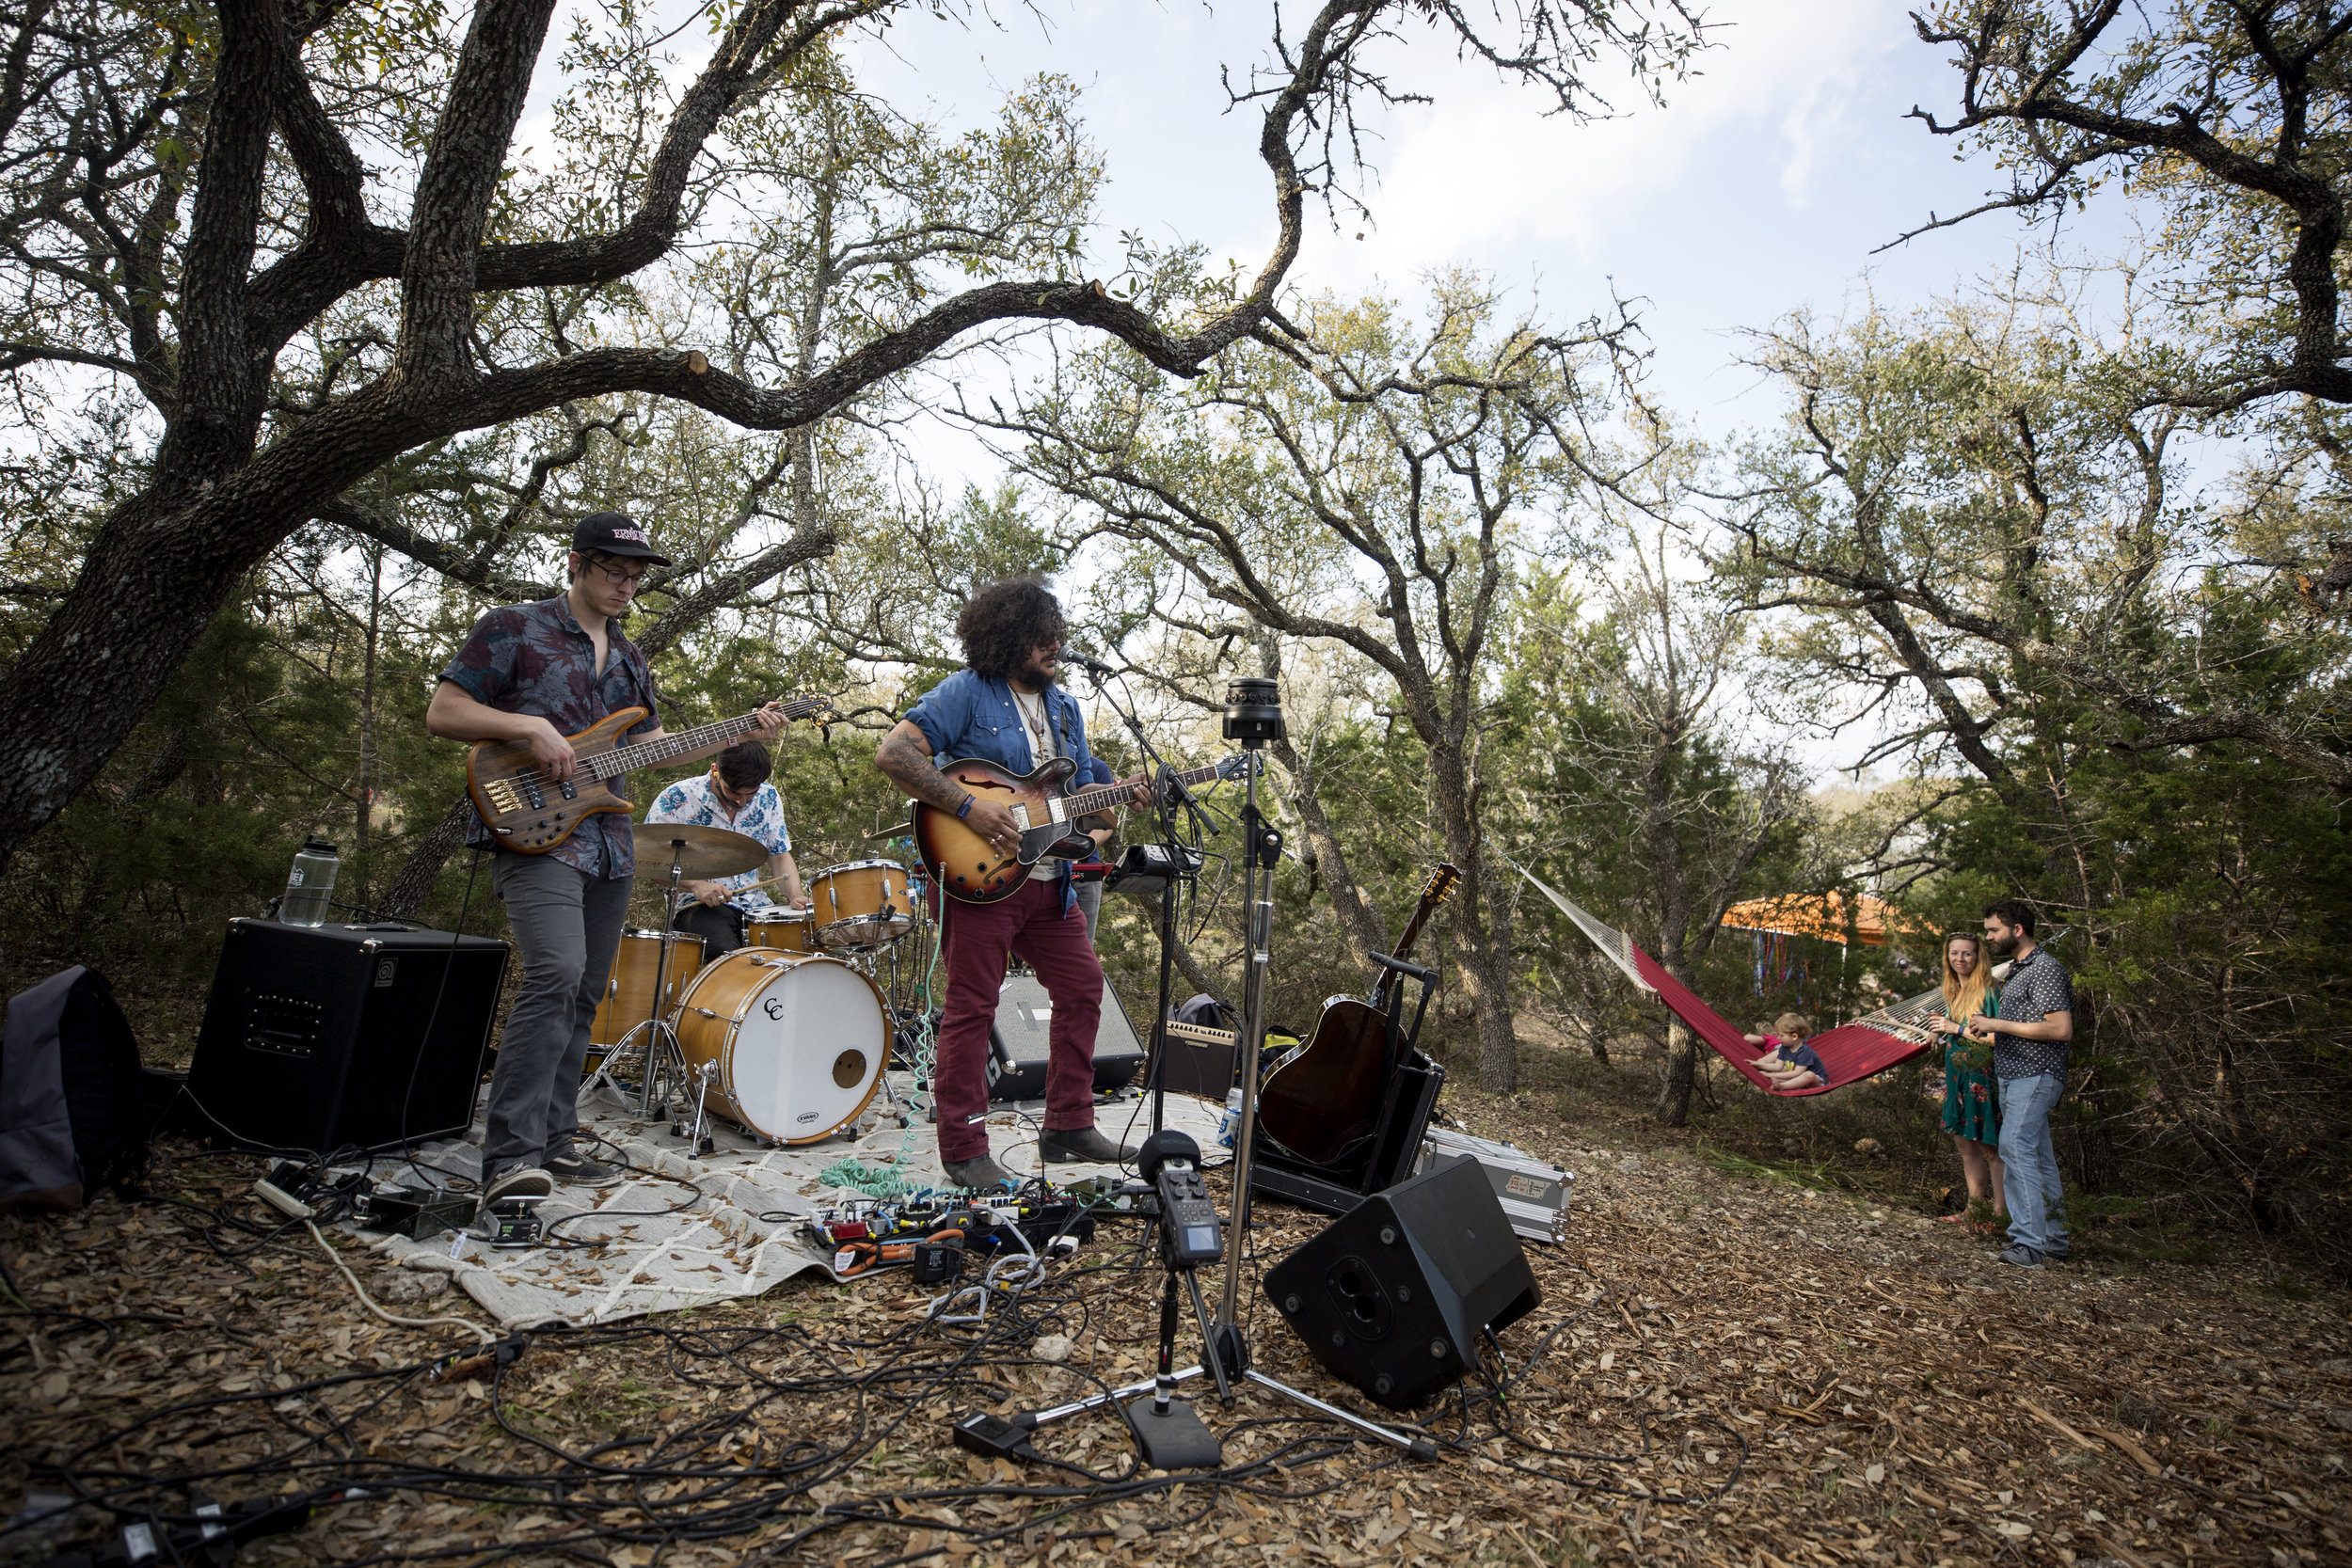 Margaret Chavez. SXSW 2018: From The Hills With Love. Dripping Springs, Texas (Shot for KUTX)